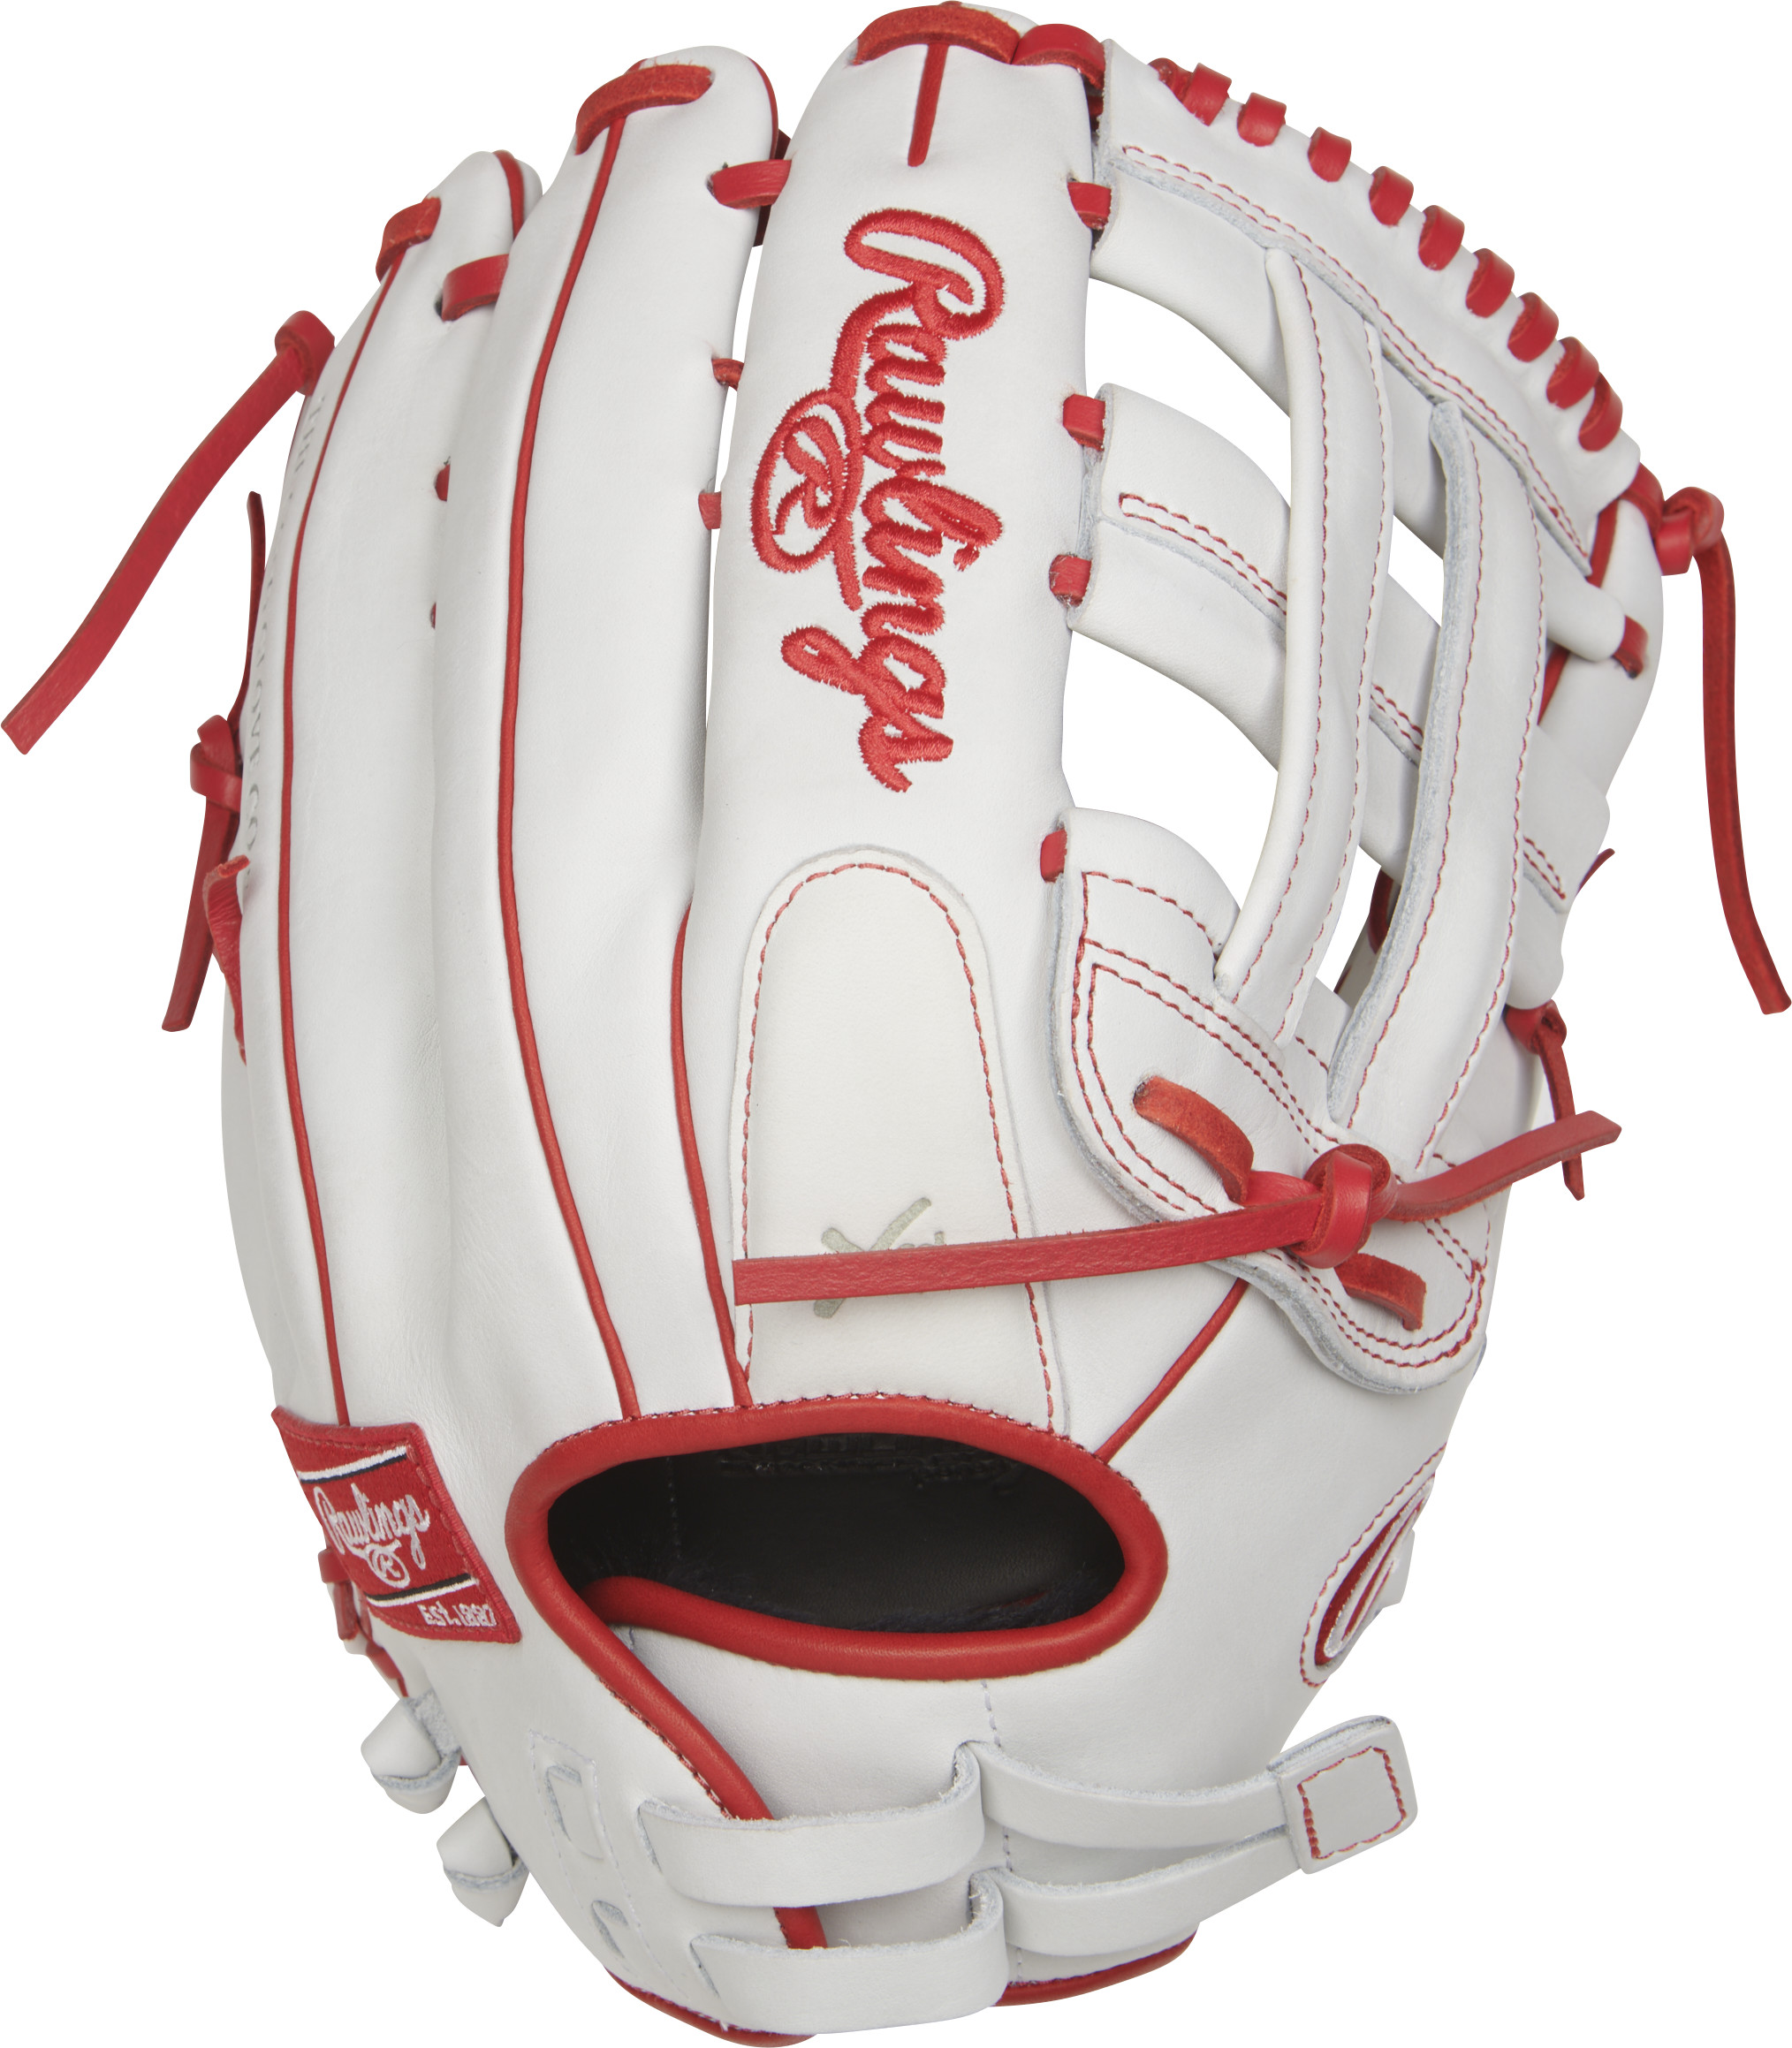 http://www.bestbatdeals.com/images/gloves/rawlings/RLA130-6W-2.jpg